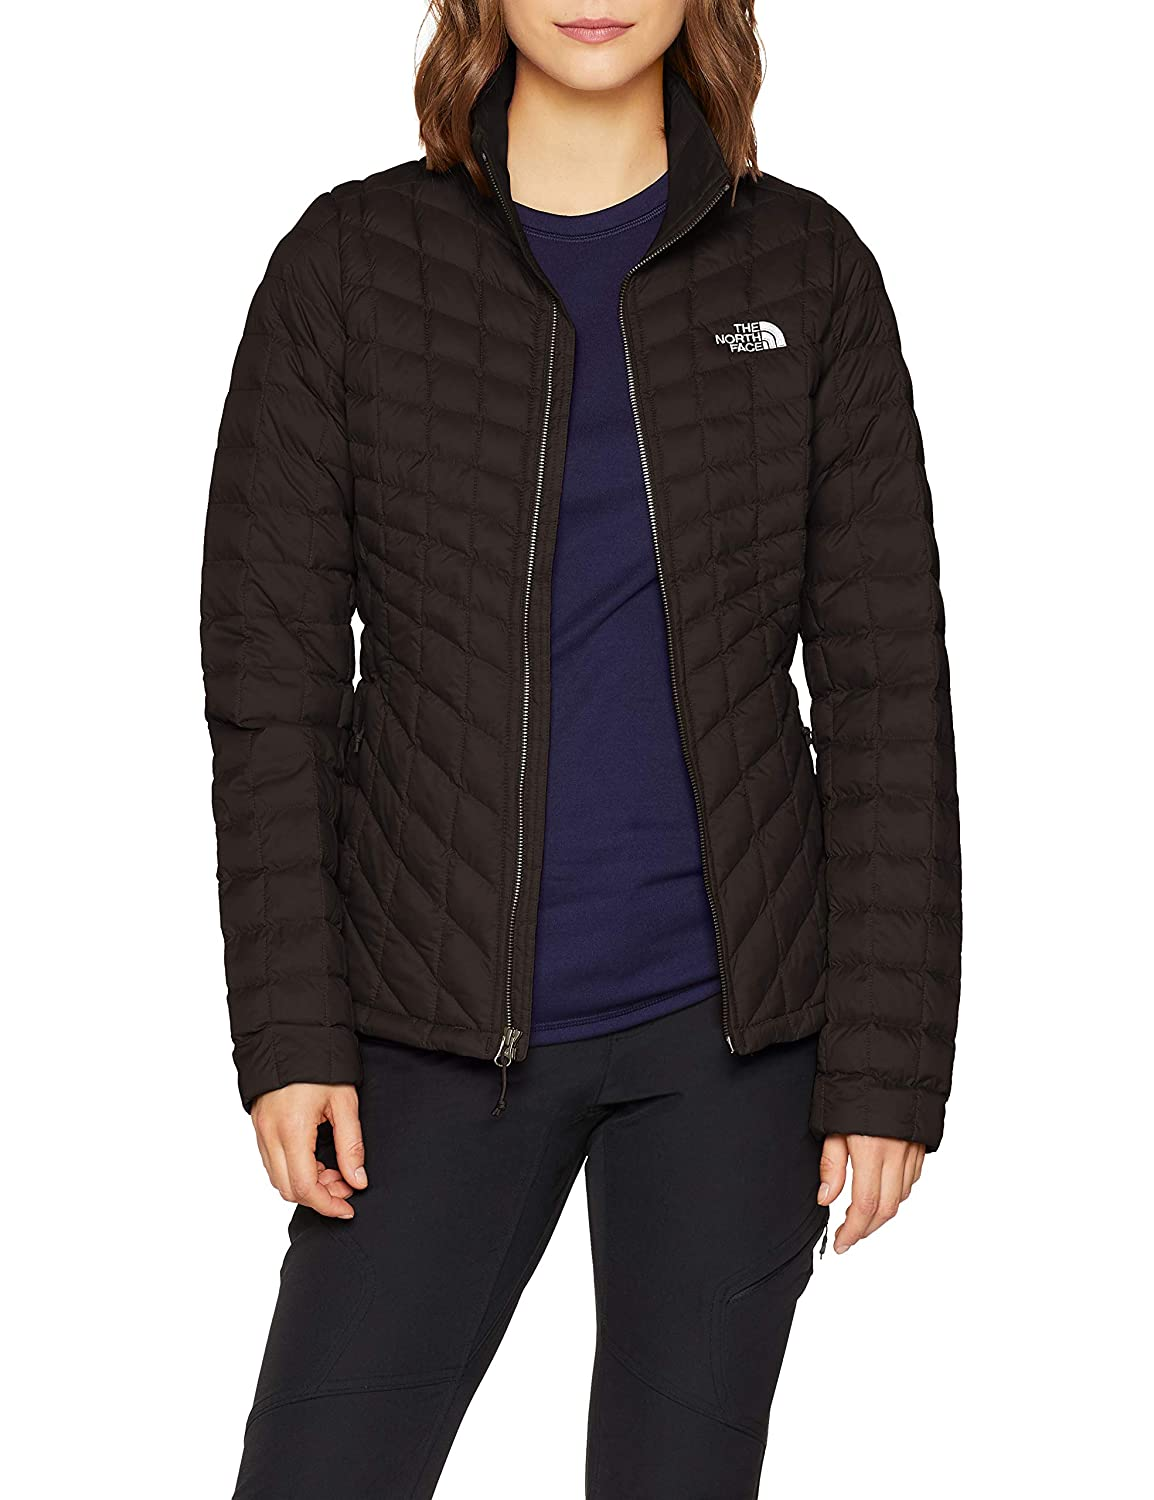 THE NORTH FACE Damen Thermoball Sportjacke Jacke